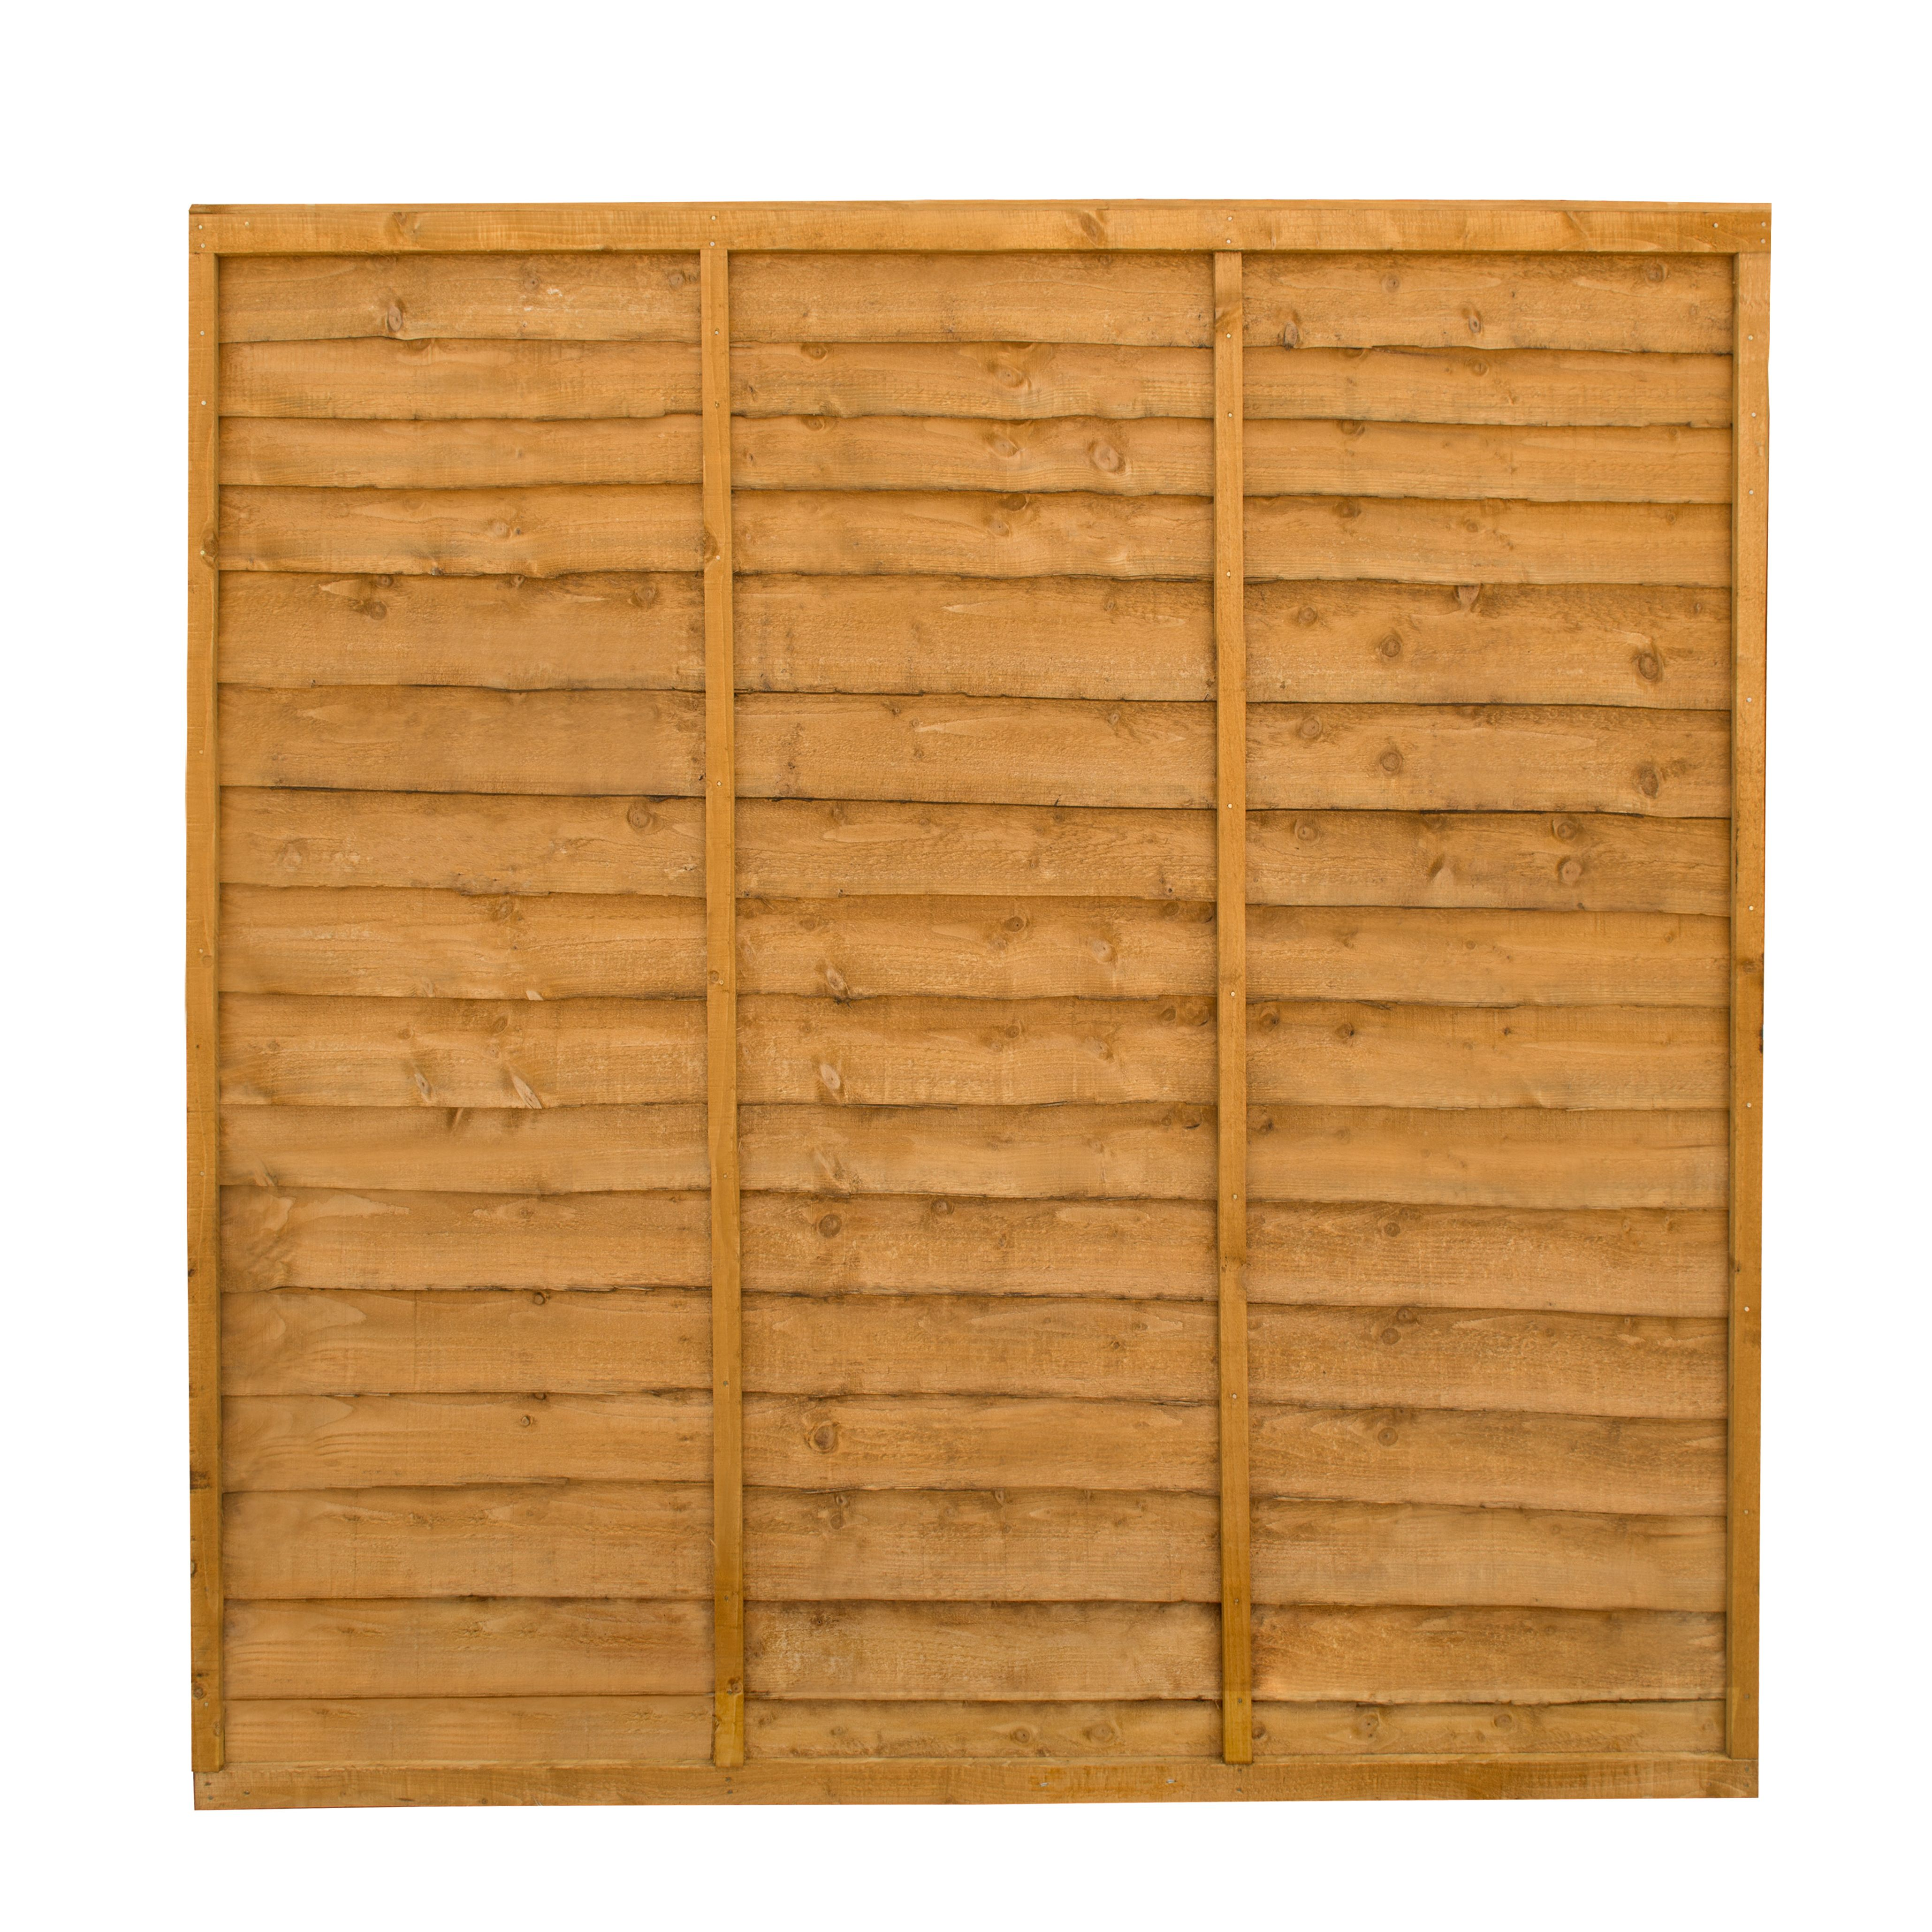 Traditional Wood Lap Fence Panel W 1 83 M H 1 83m Departments Diy At B Q